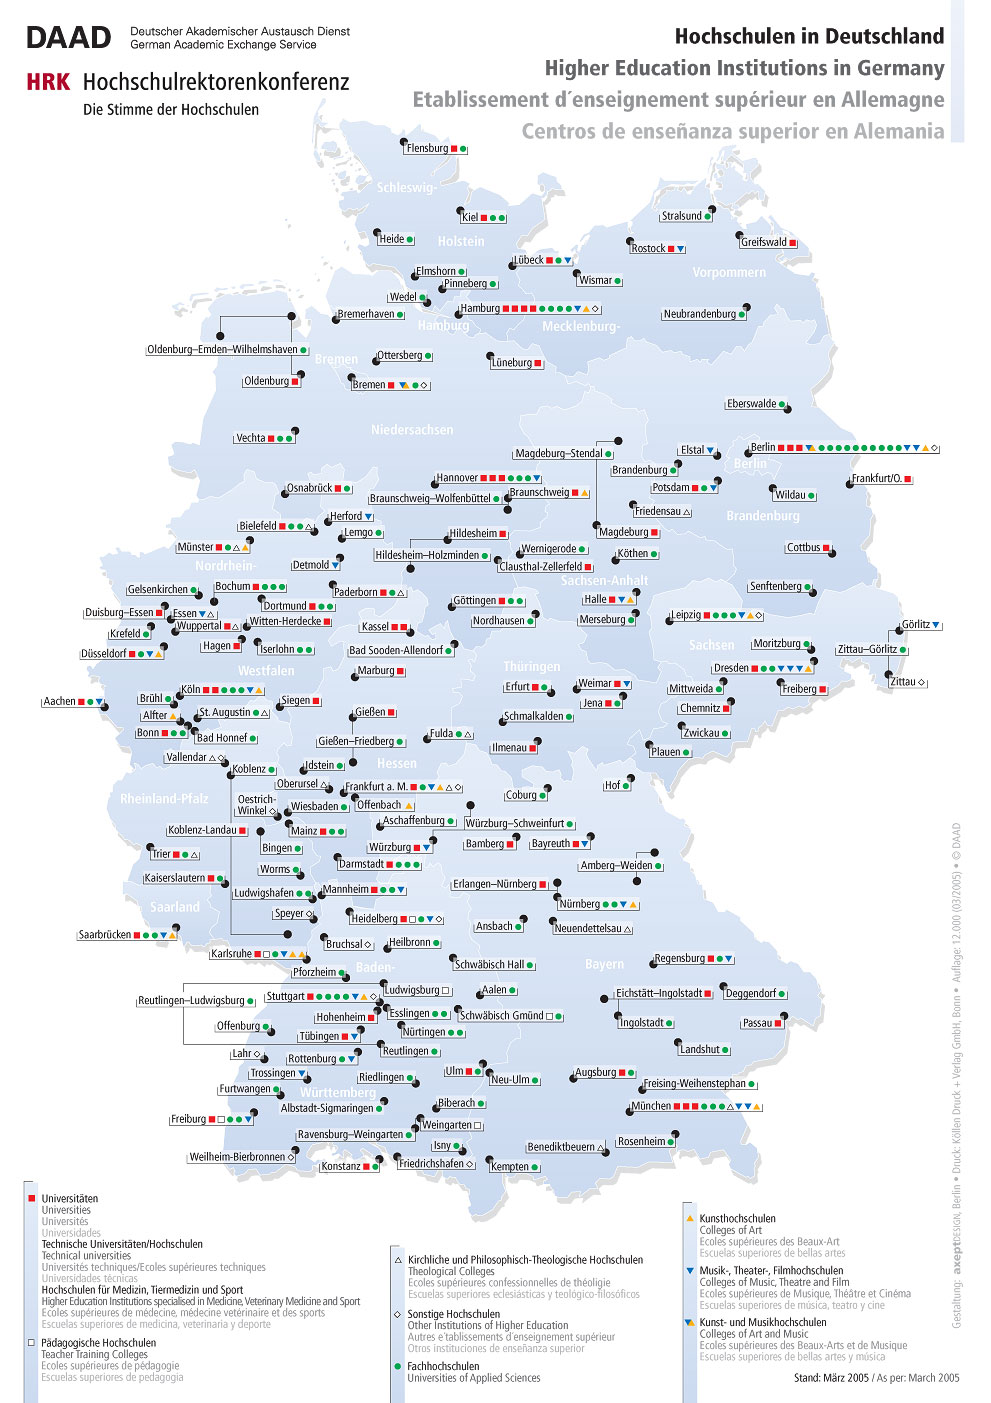 Higher education institutions in Germany 2005